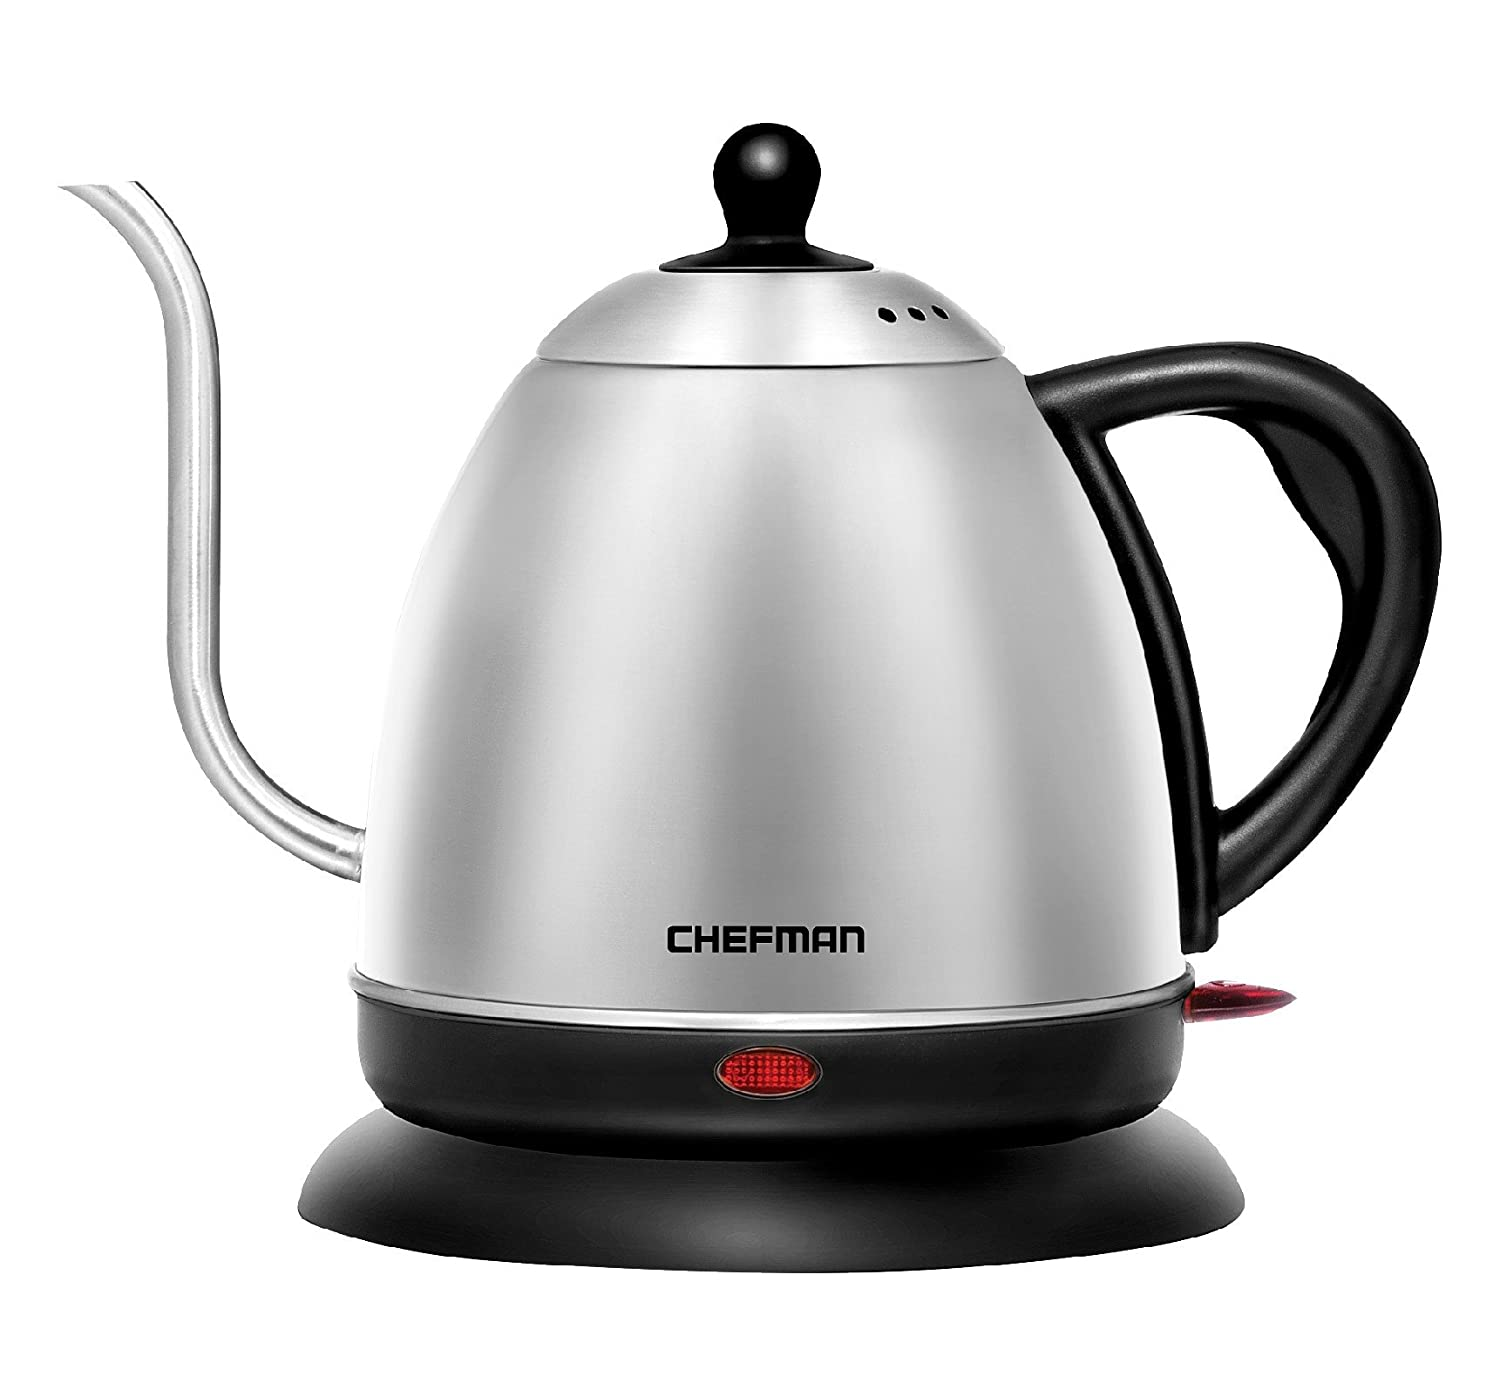 Chefman Electric Kettle,Gooseneck Pour Over Style Water Boiler, 360 Degree Cordless Rotating, Rapid Boil & Strix Control - Stainless Steel, 1 Liter RJ11-GN